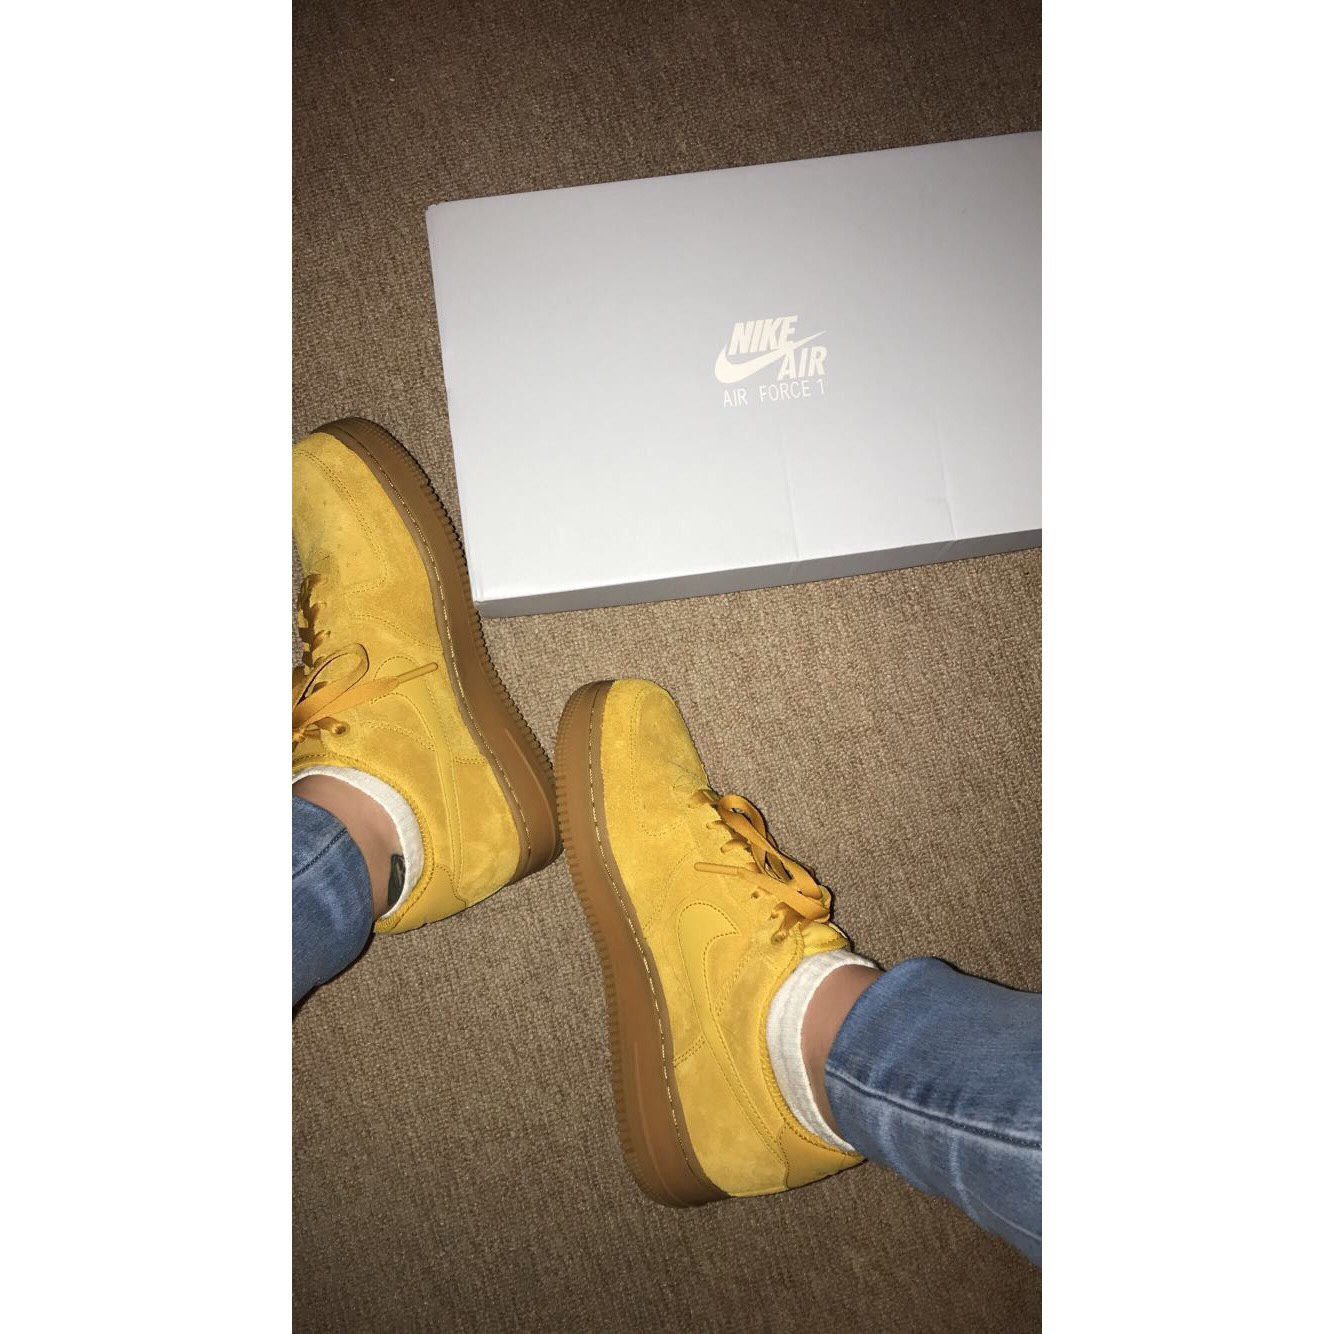 Nike Air Force 1 in mustard suede with